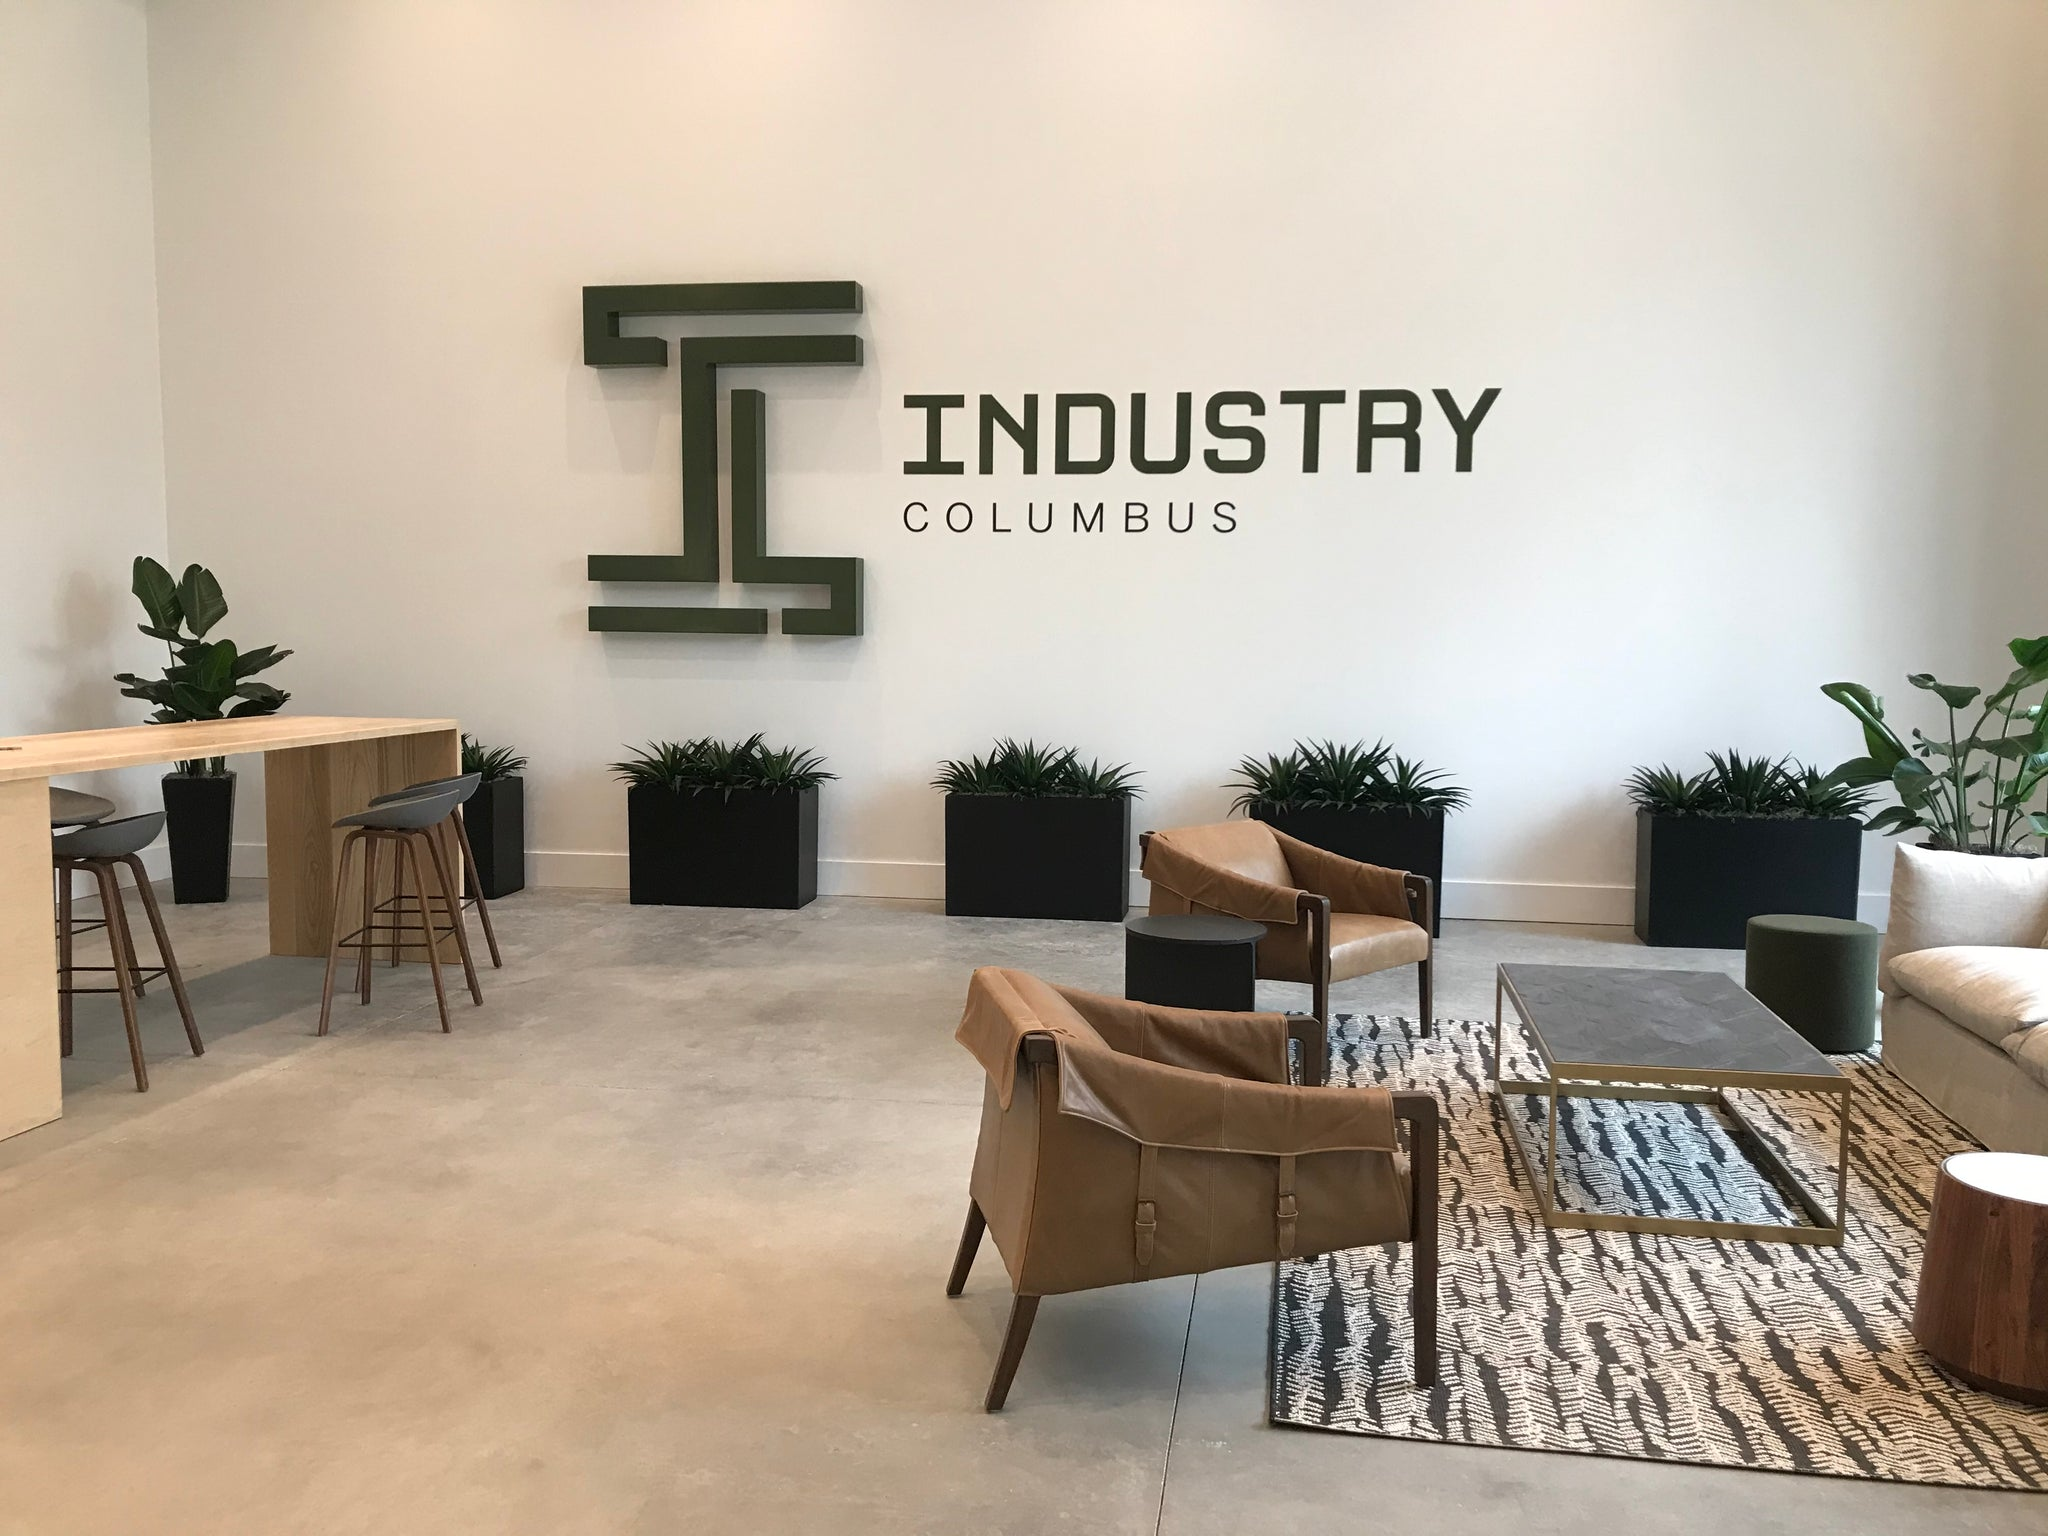 What's Trending in Interior Plant Design? -Fall 2020